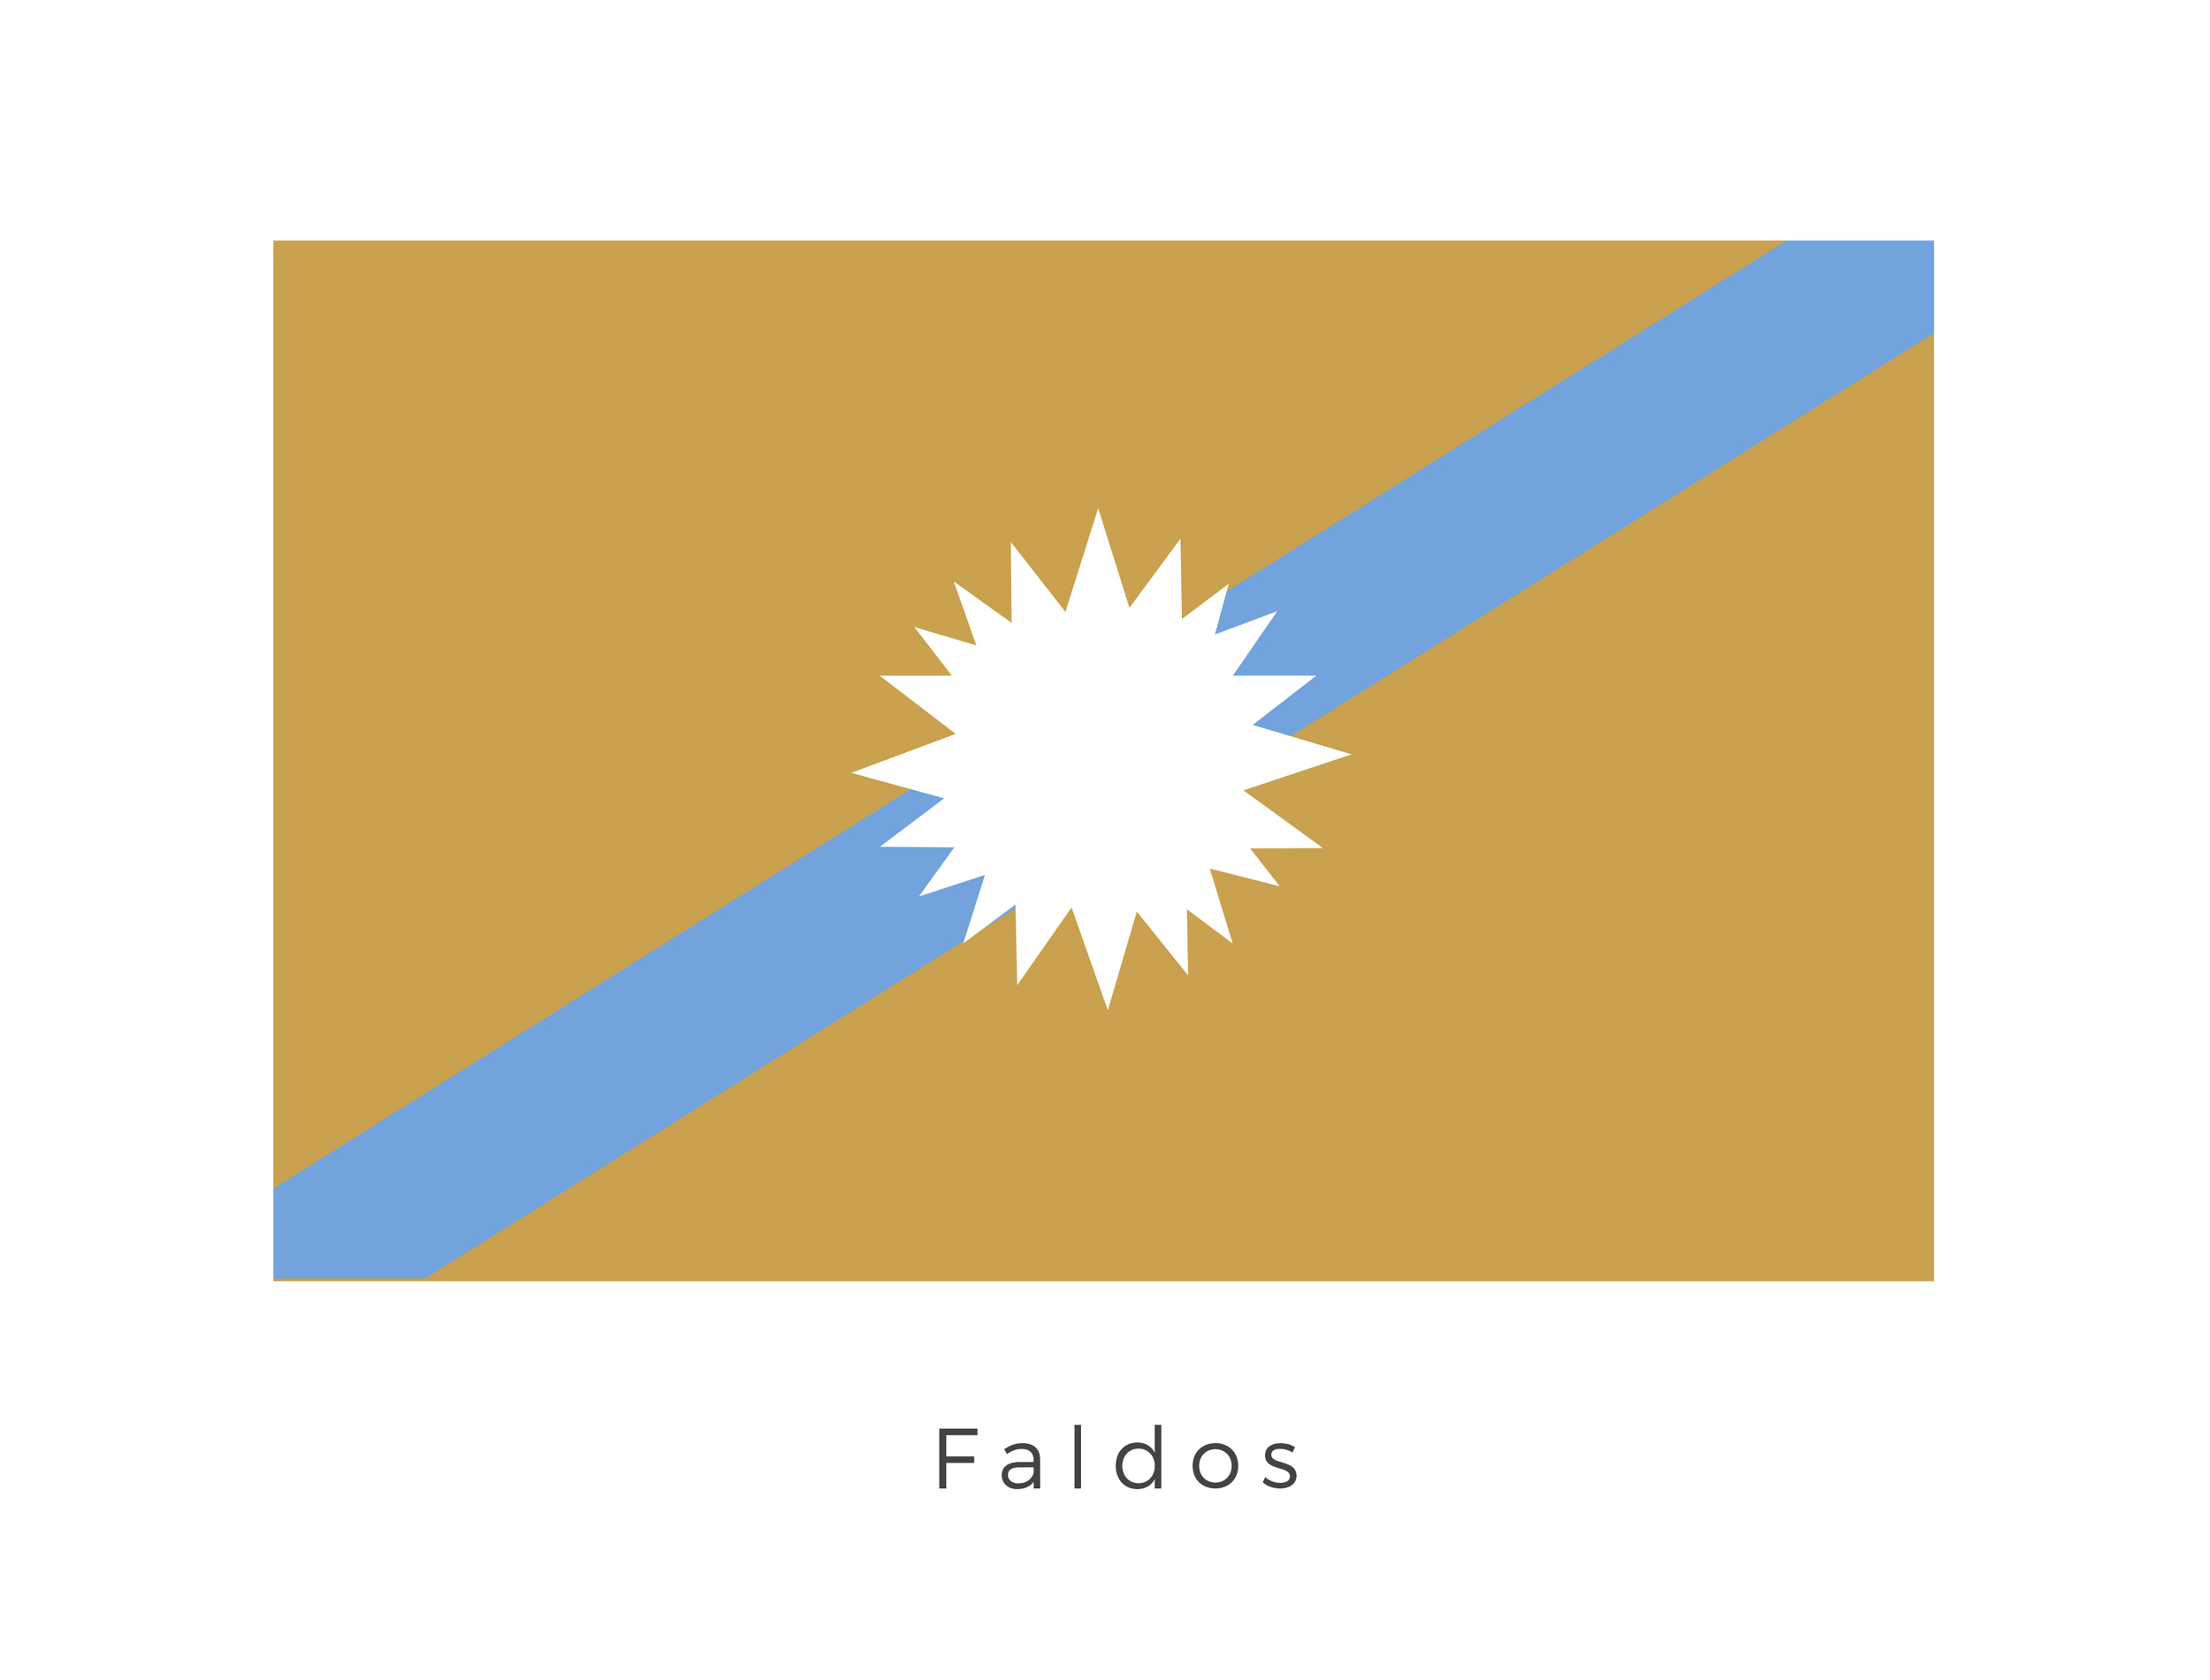 Faldos  was a dirty backwater Outer Rim Territories world used by smugglers to sell stolen weapons, armor, and technology. It sat on the very edge of the galaxy, making it far more removed than most of the Outer Rim Territories. The flag is representative of a band of smugglers who rule the planet.